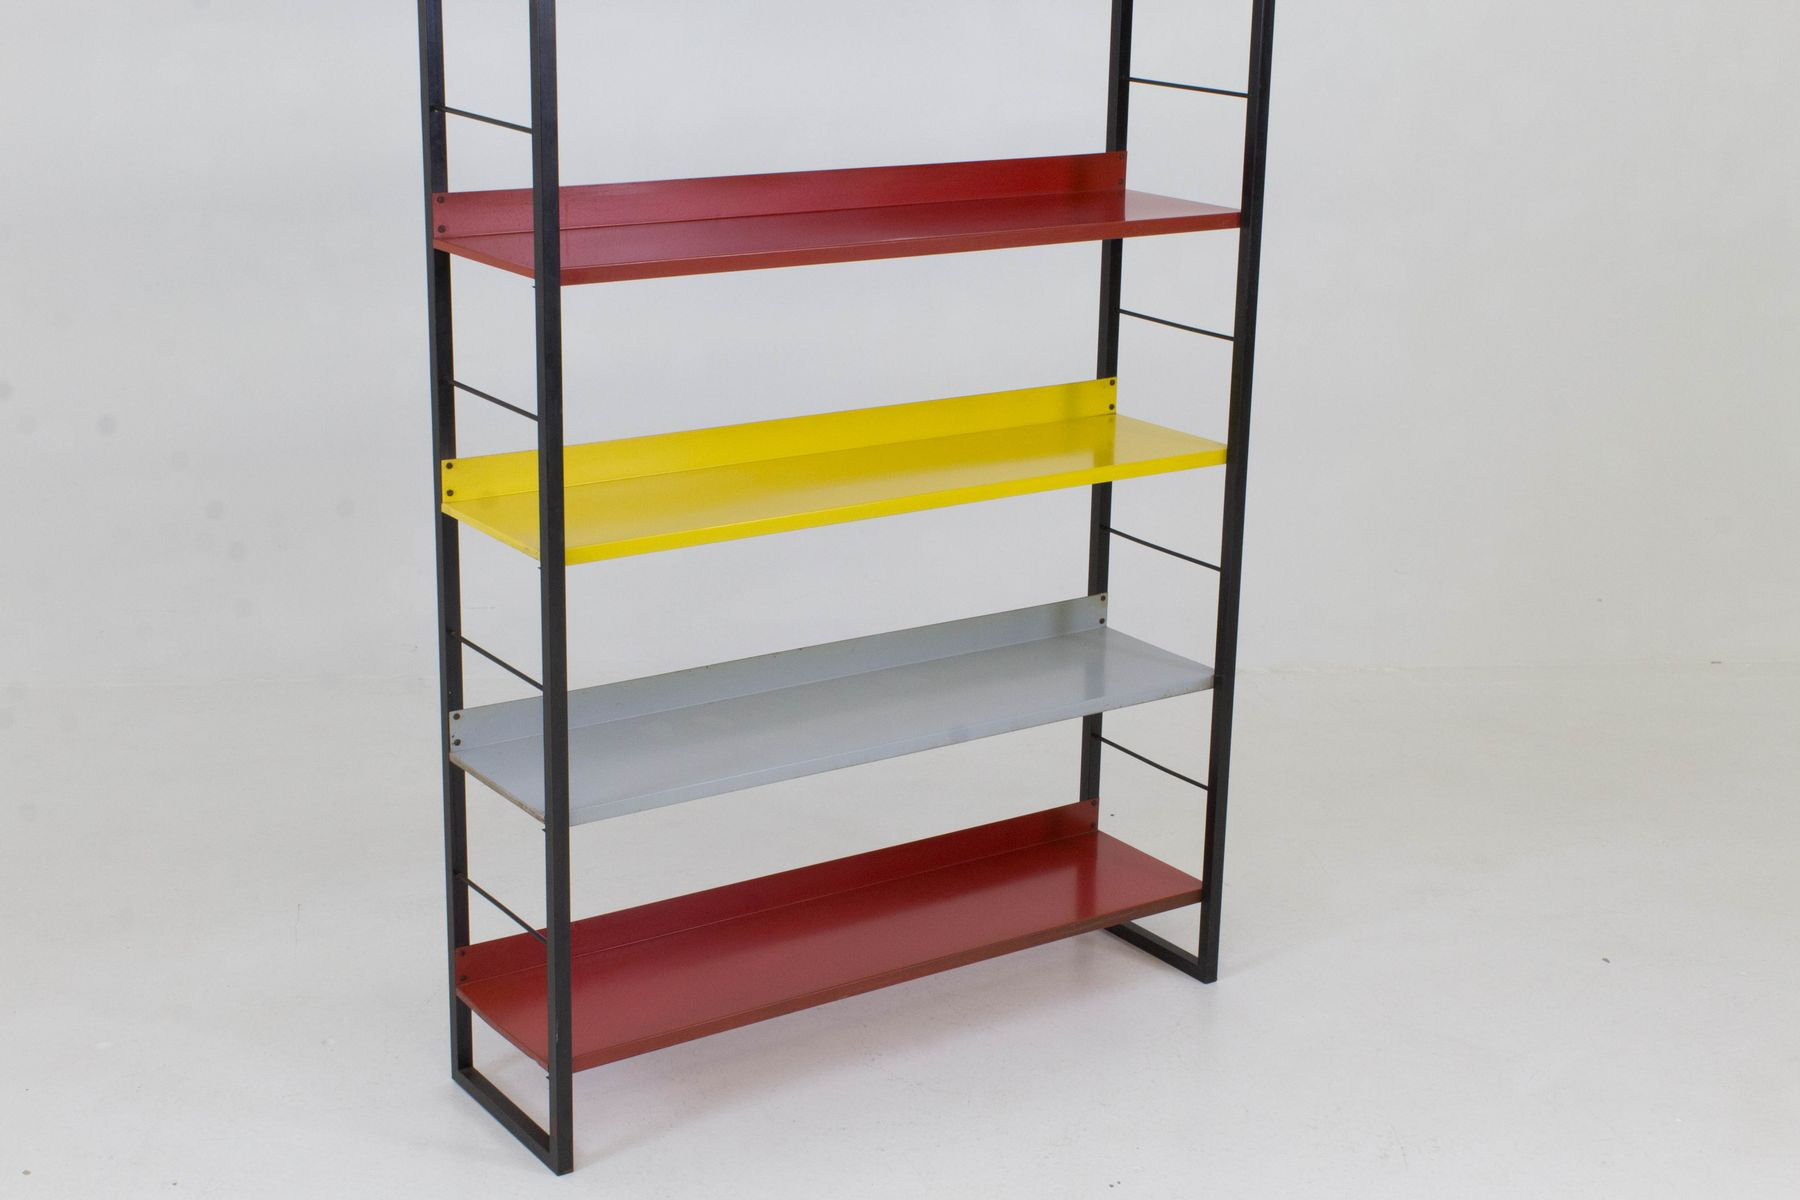 mid century modern metal standing bookshelf by tomado 1950s for